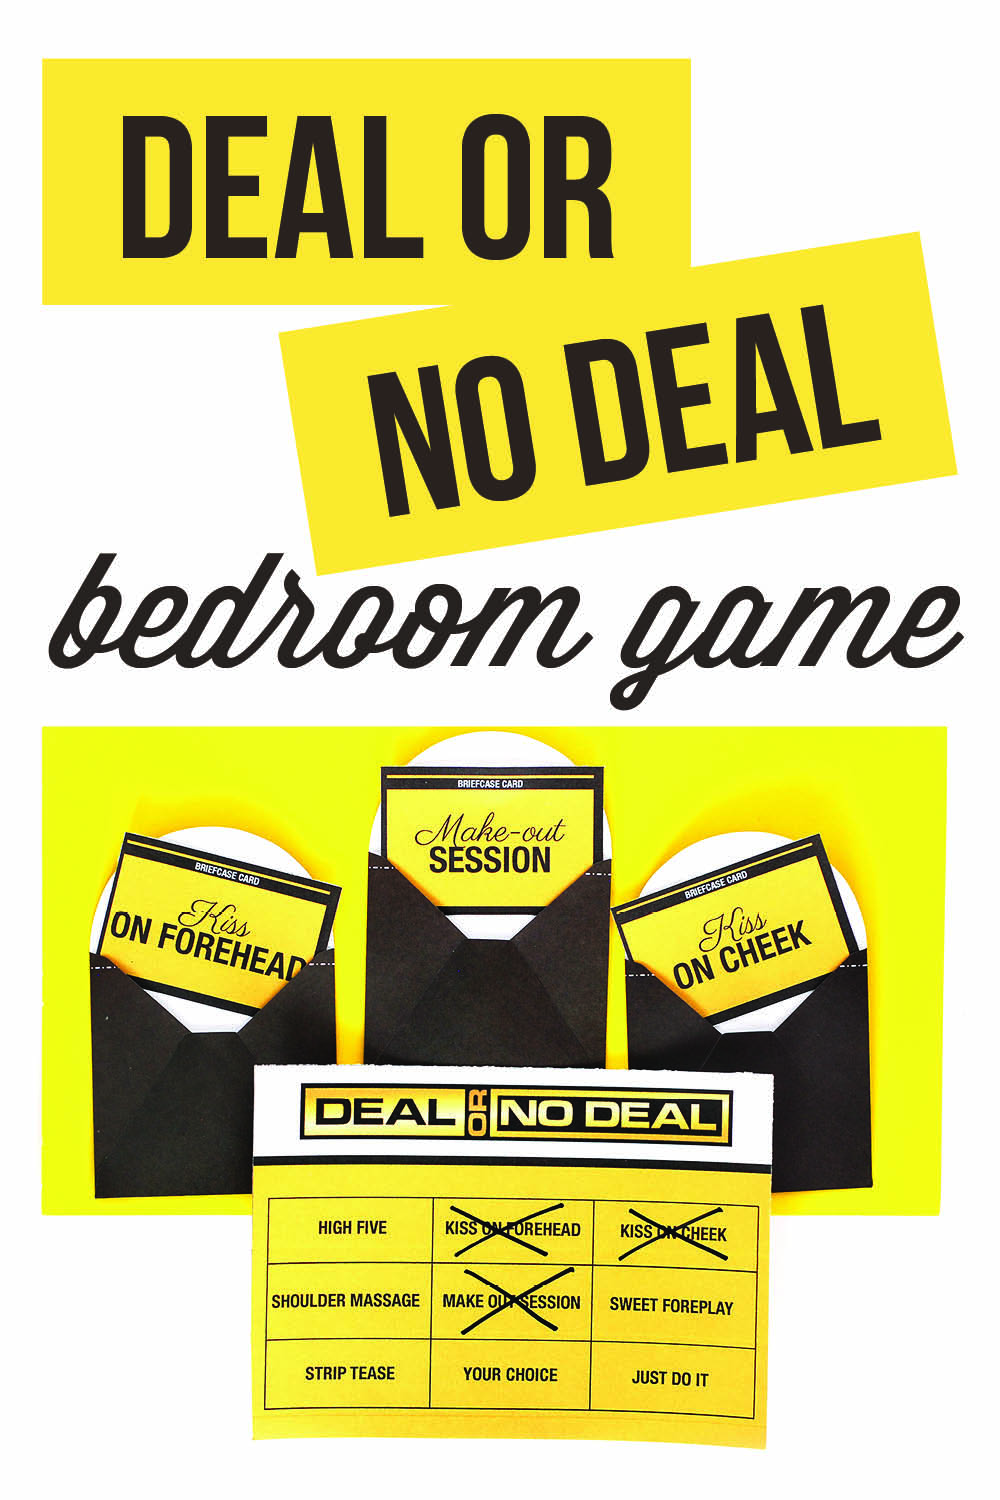 Sexy Deal or No Deal for the Bedroom | The Dating Divas